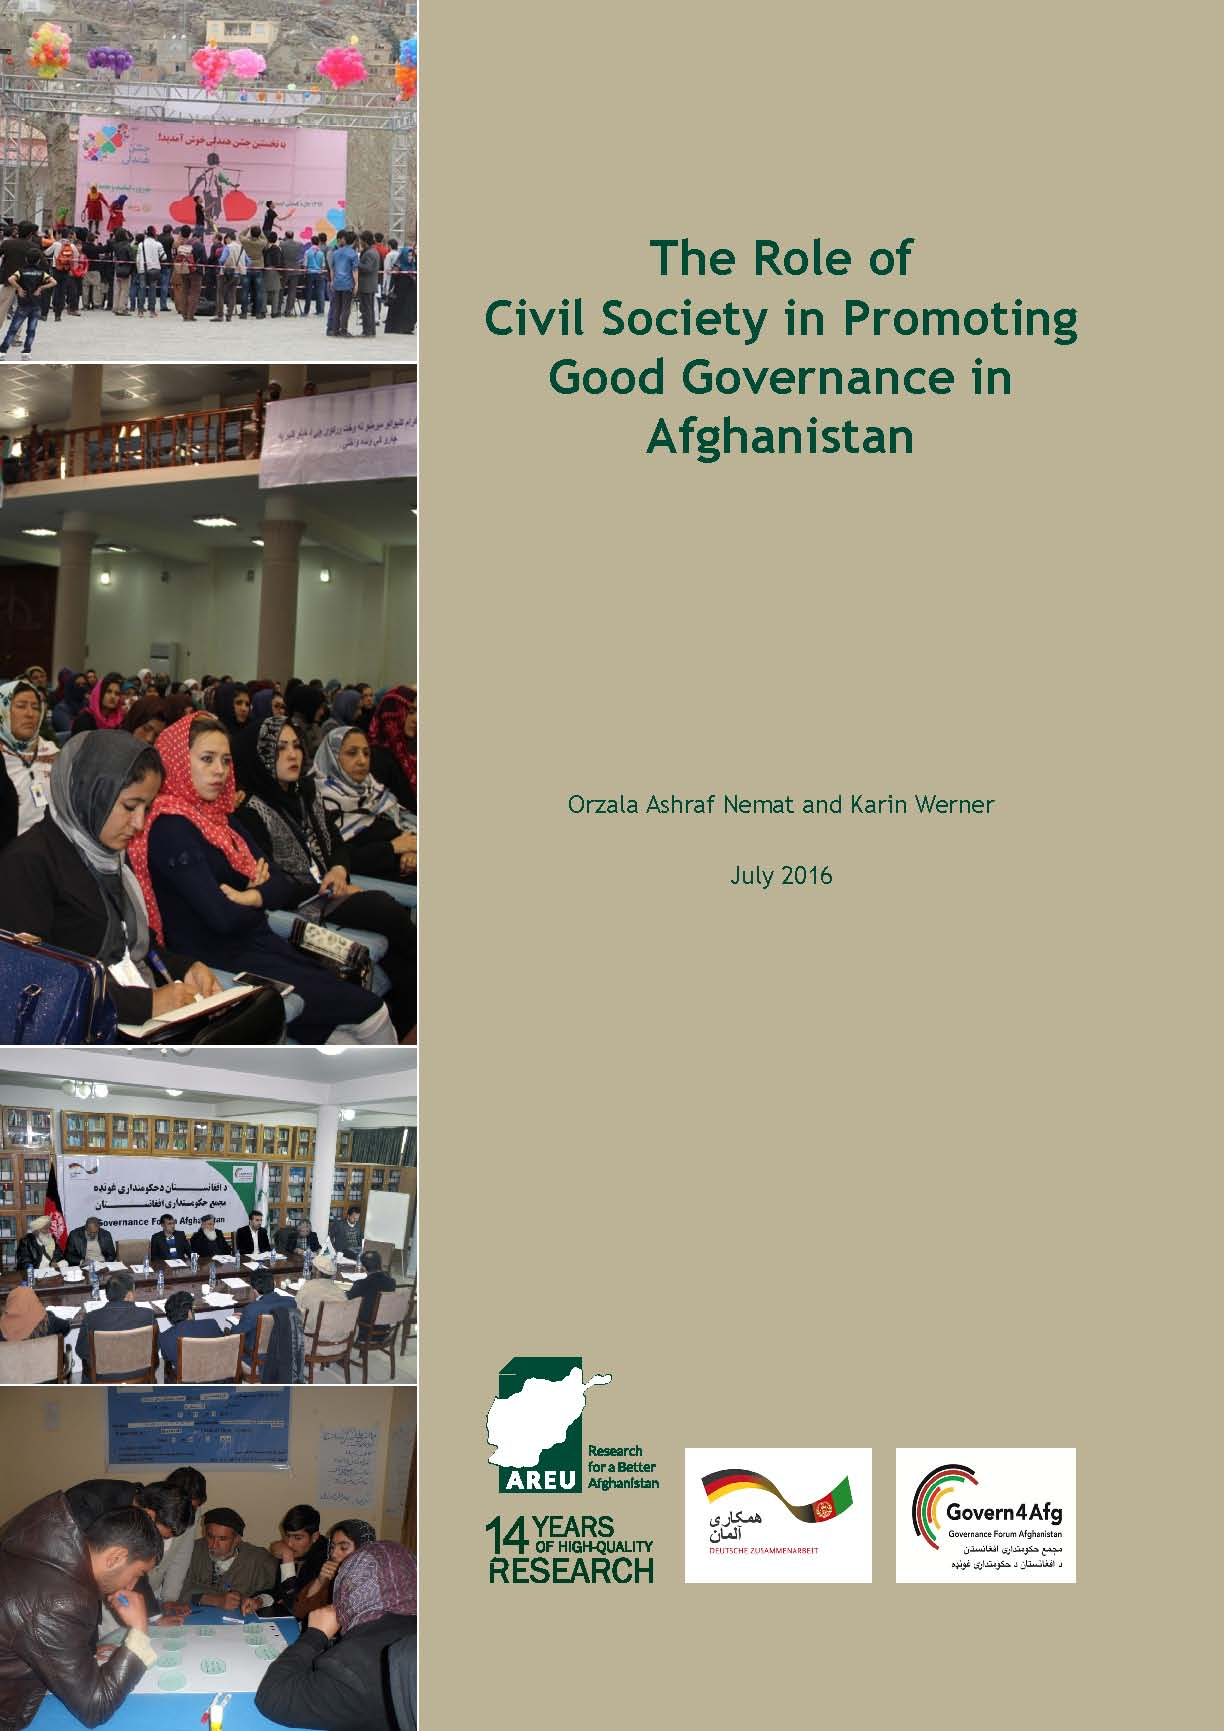 1613 The Role of Civil Society in Promoting Good Governance in Afghanistan